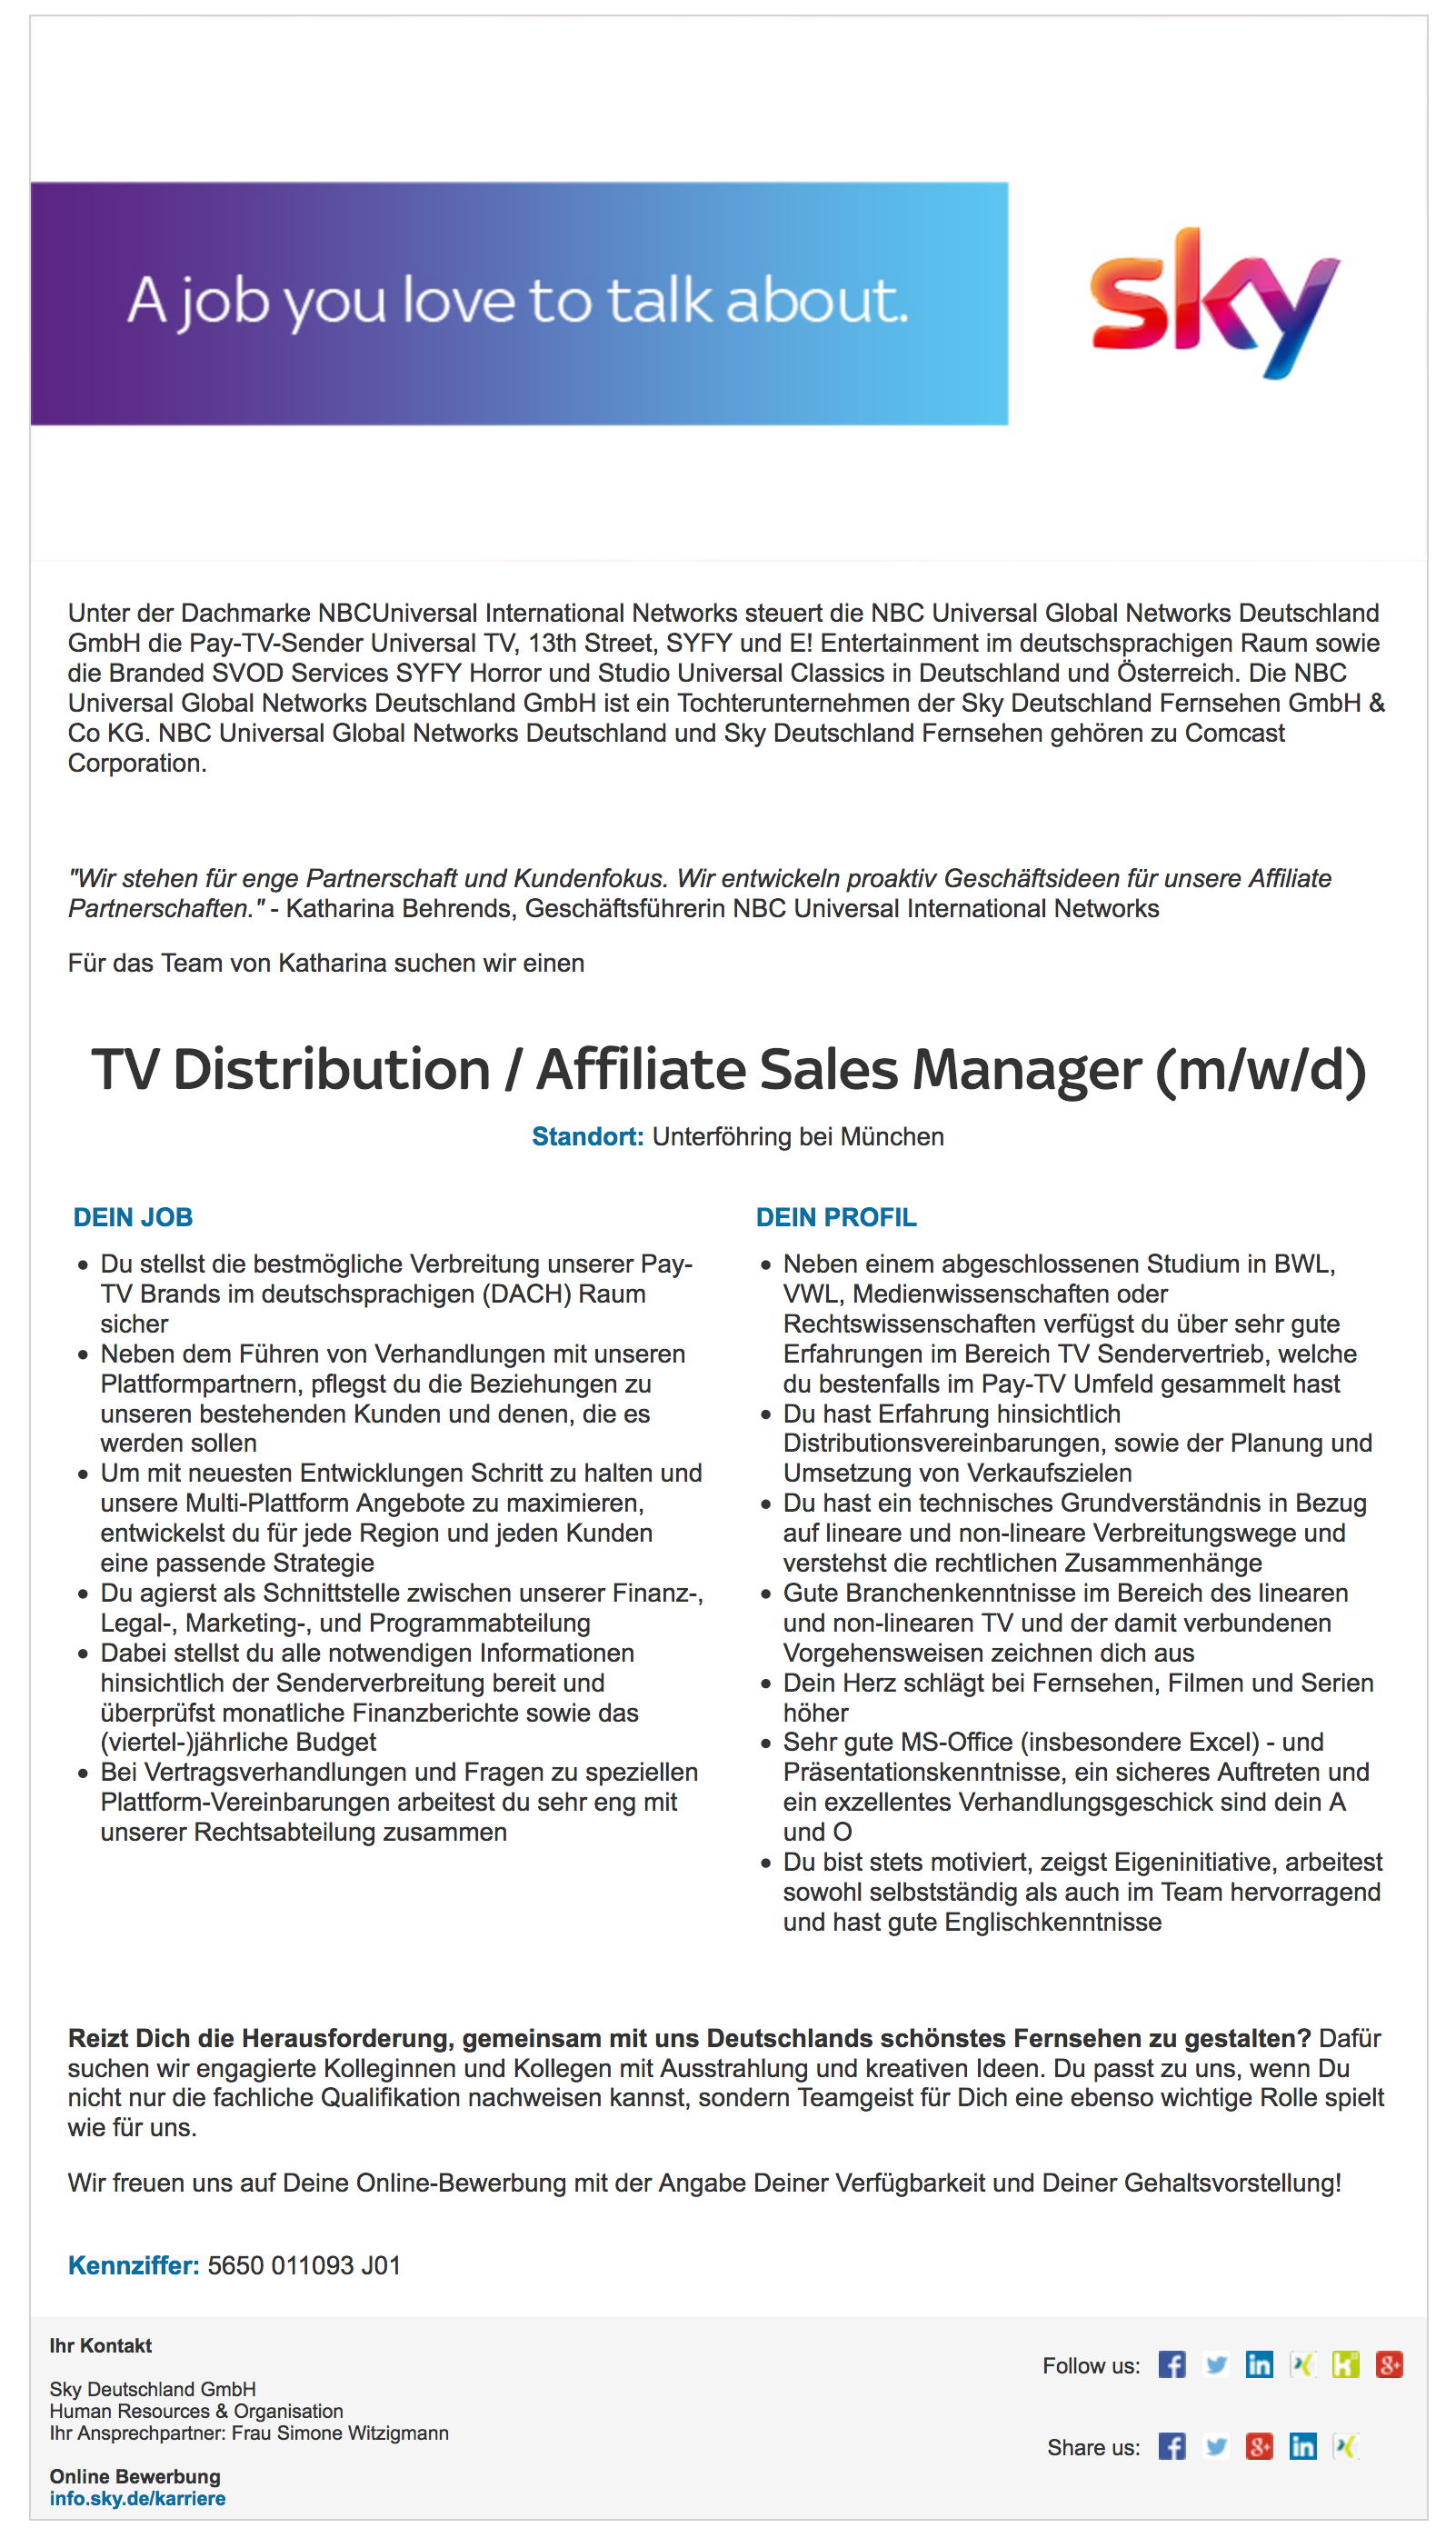 TV Distribution / Affiliate Sales Manager (m/w/d)